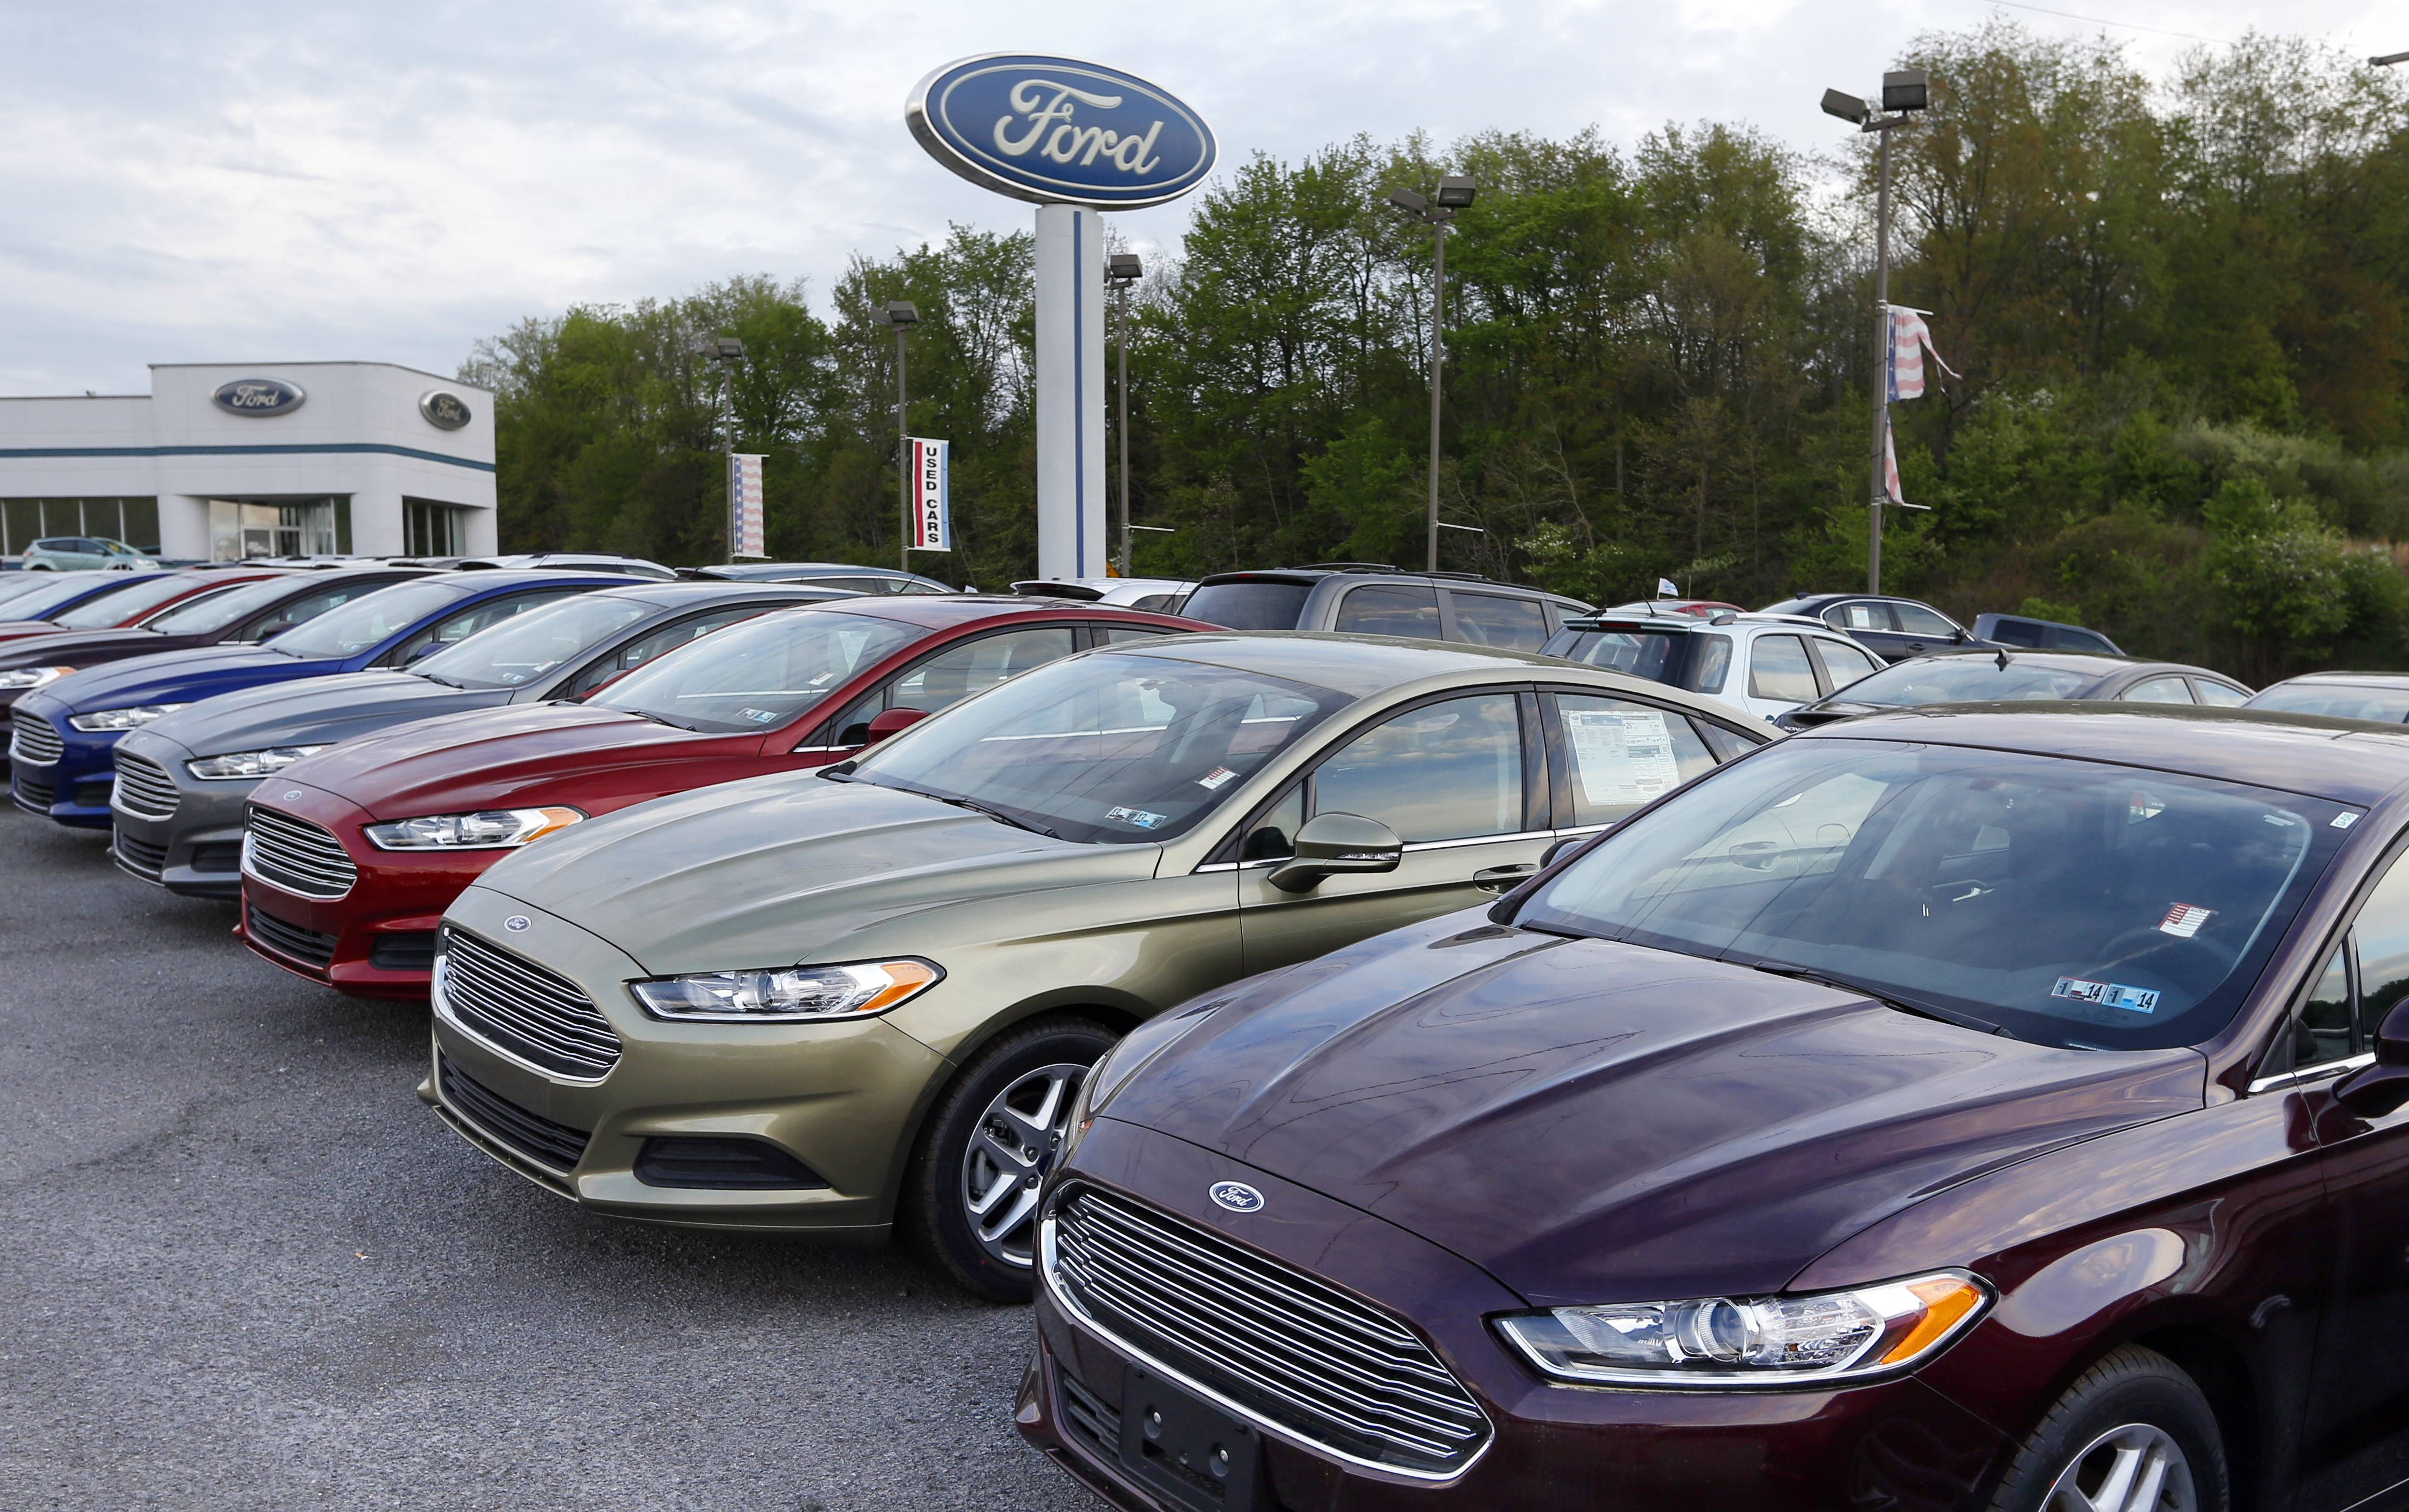 U.S. auto sales grew at the fastest pace in eight years in June, surprising the industry and setting it up for a strong second half of the year.